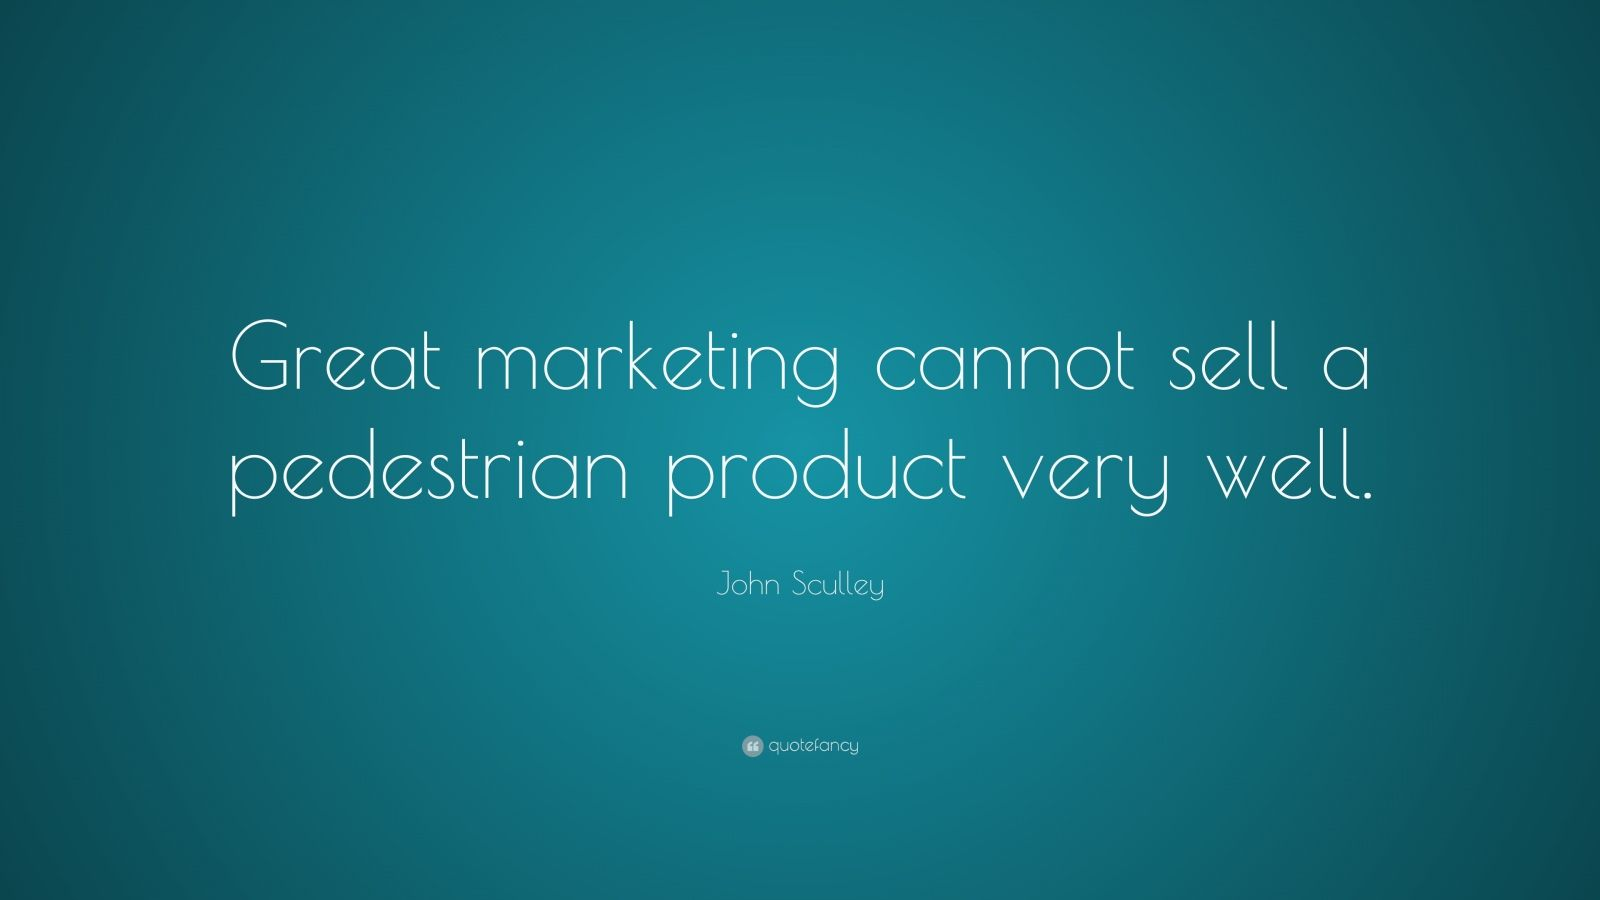 John Sculley Quotes (29 wallpapers) - Quotefancy